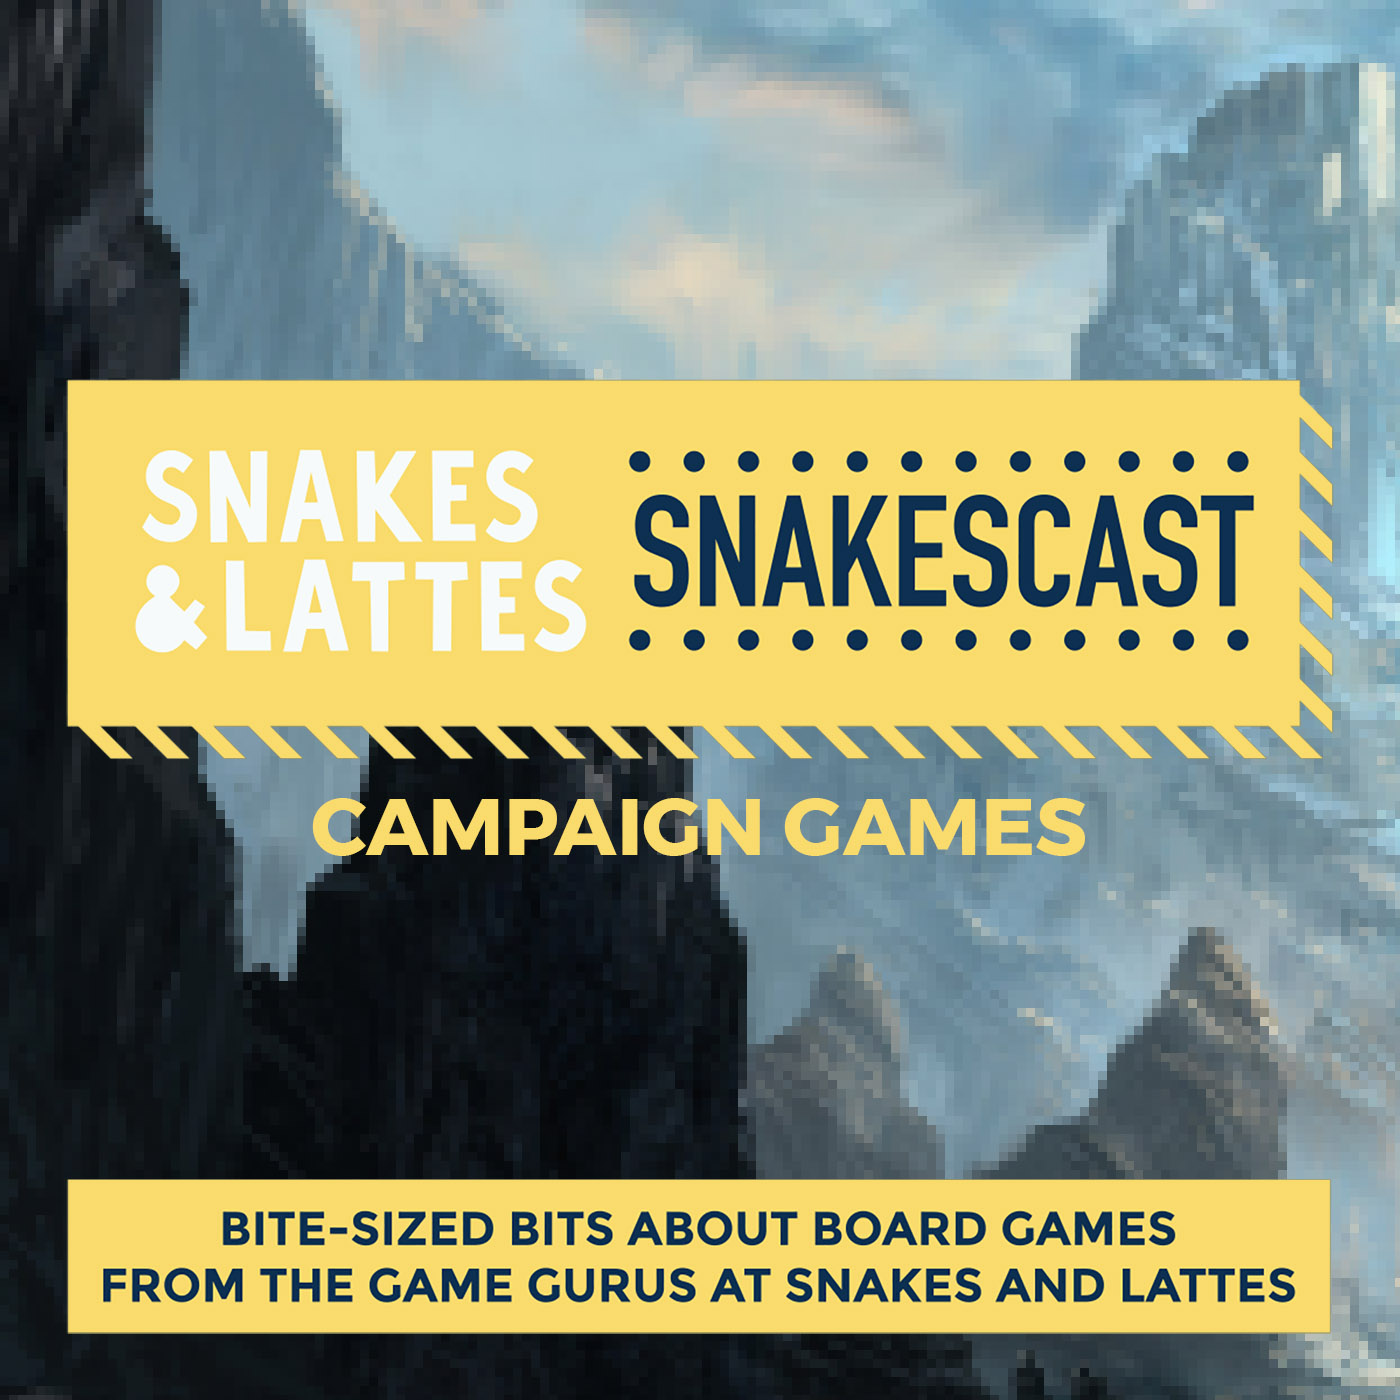 Campaign Games, Part 1 - The game continues